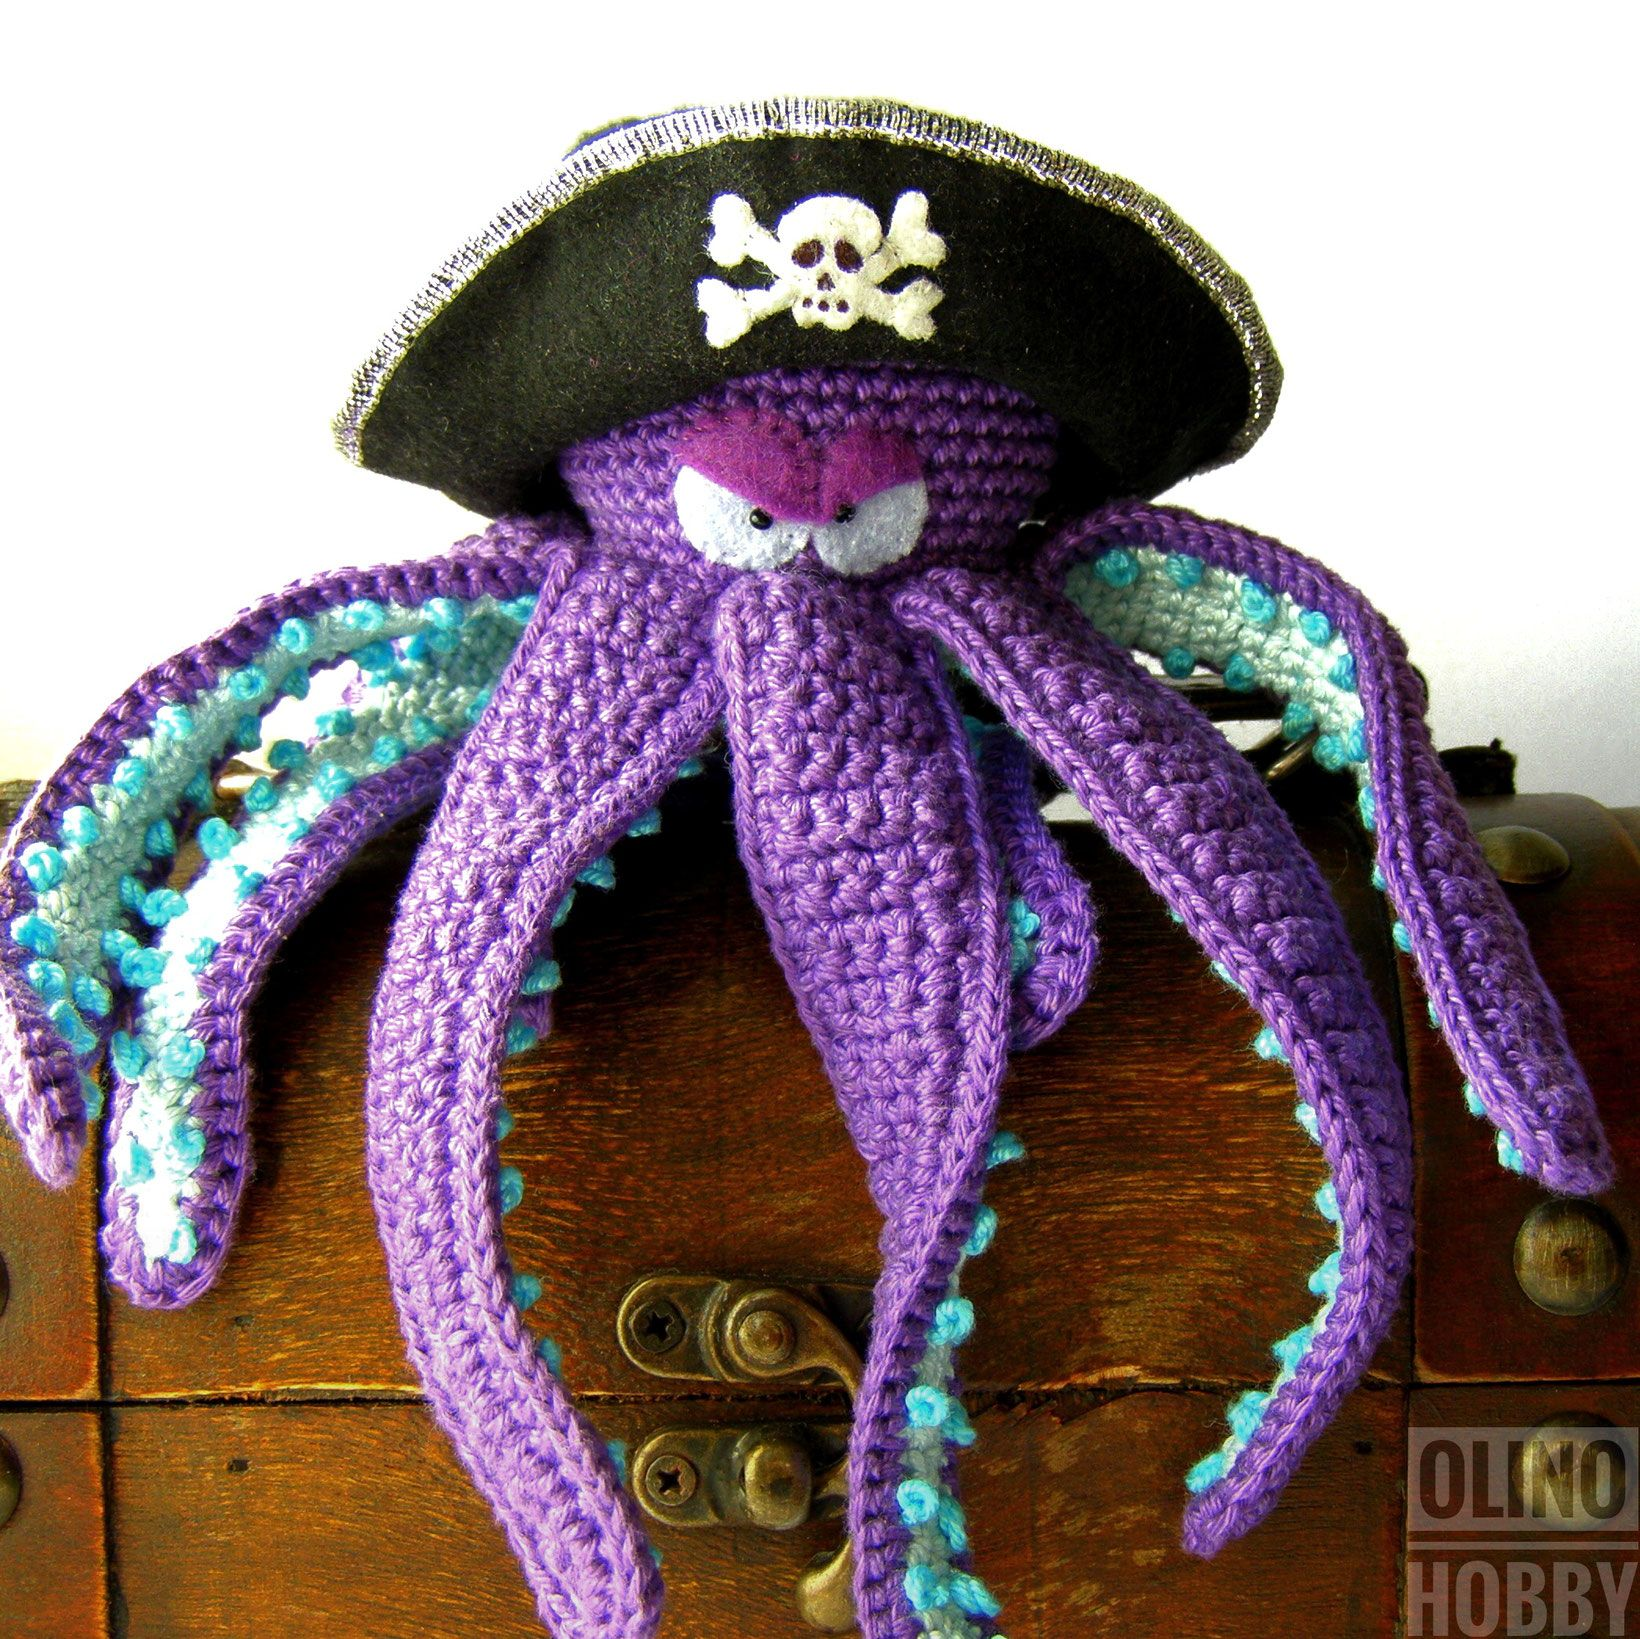 Crochet Octopus Pirate - inspired Pirates of the Caribbean